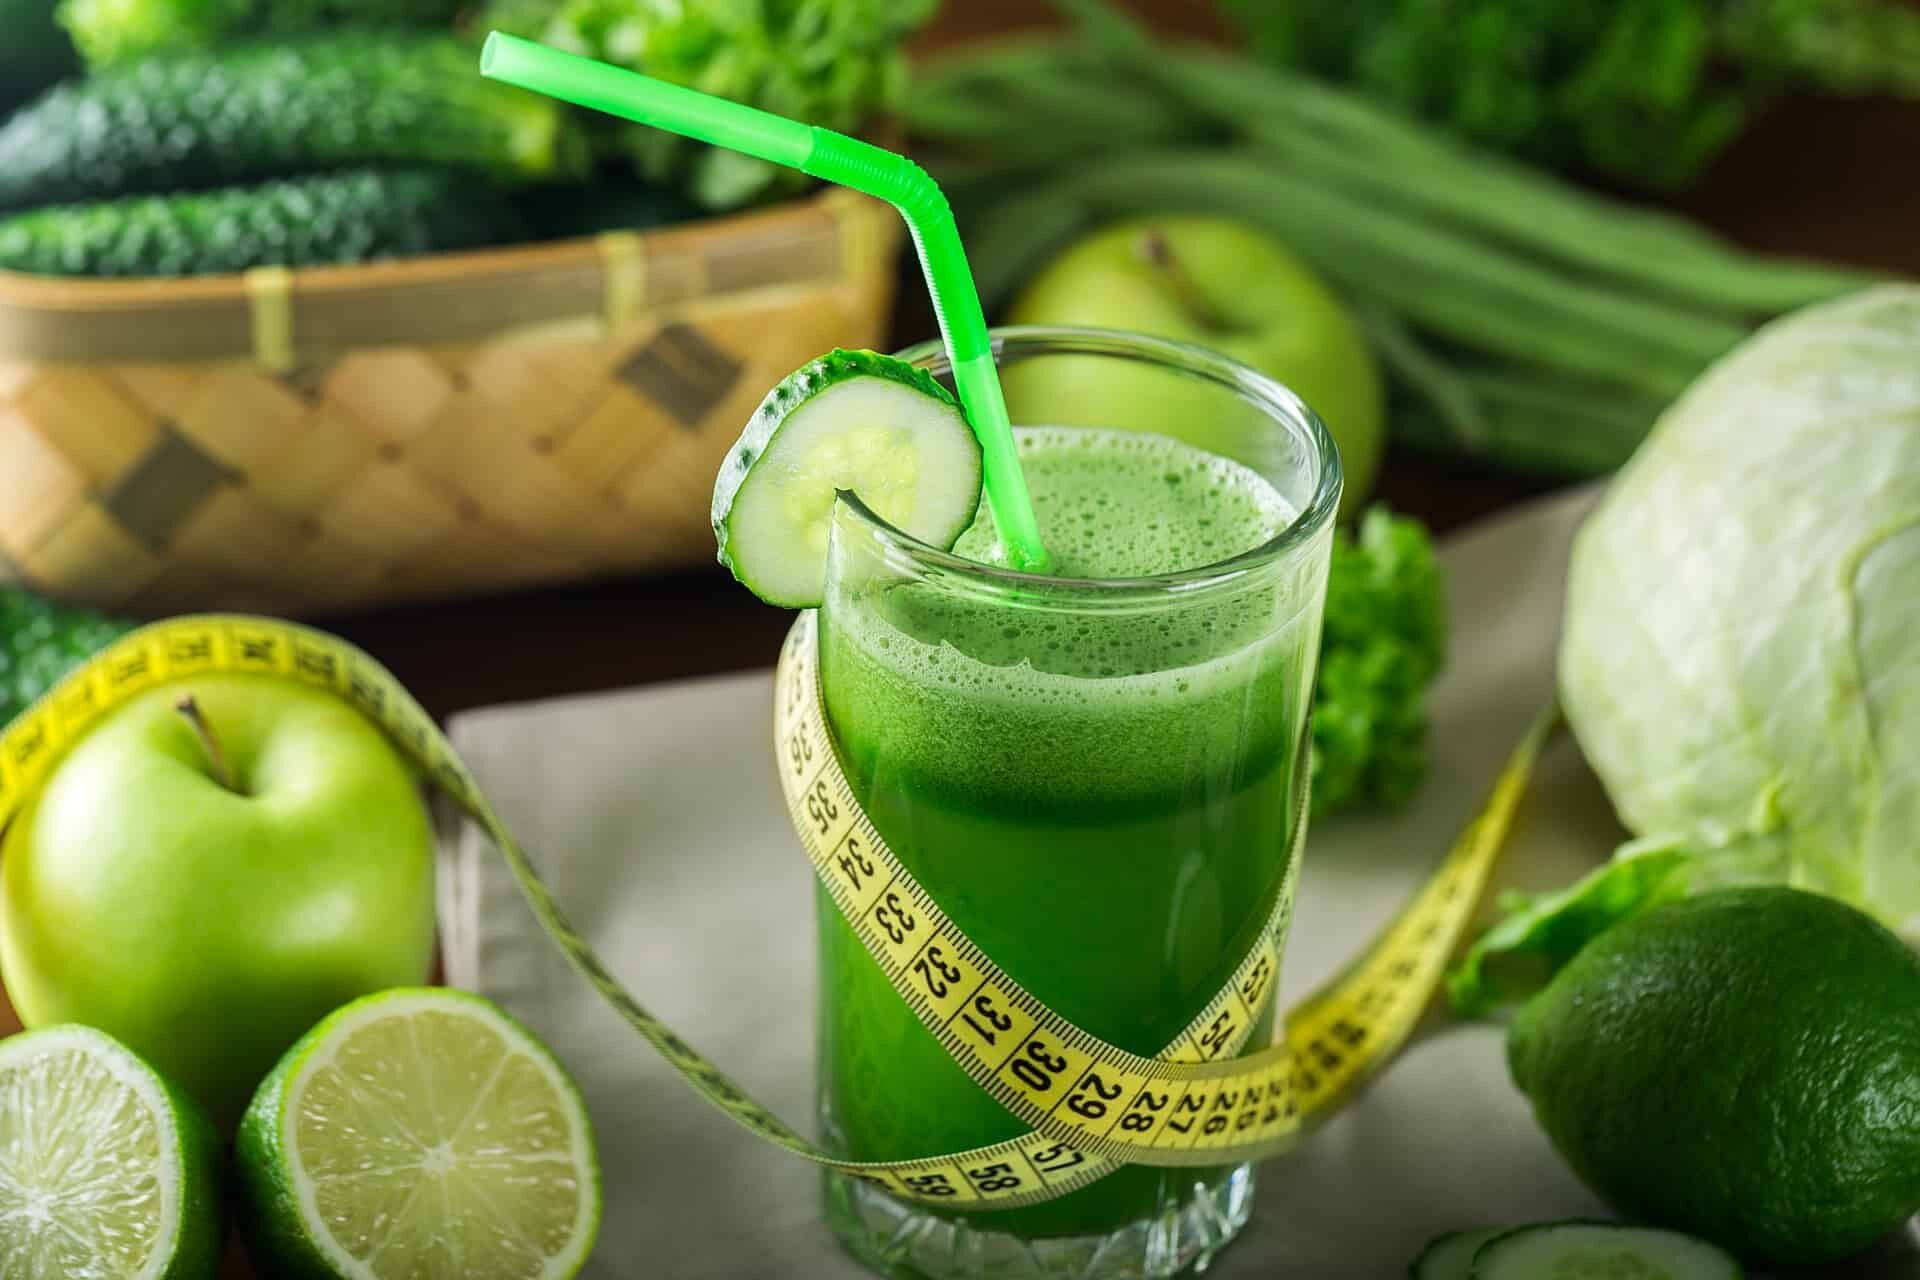 Green delicious juice with a tape measure